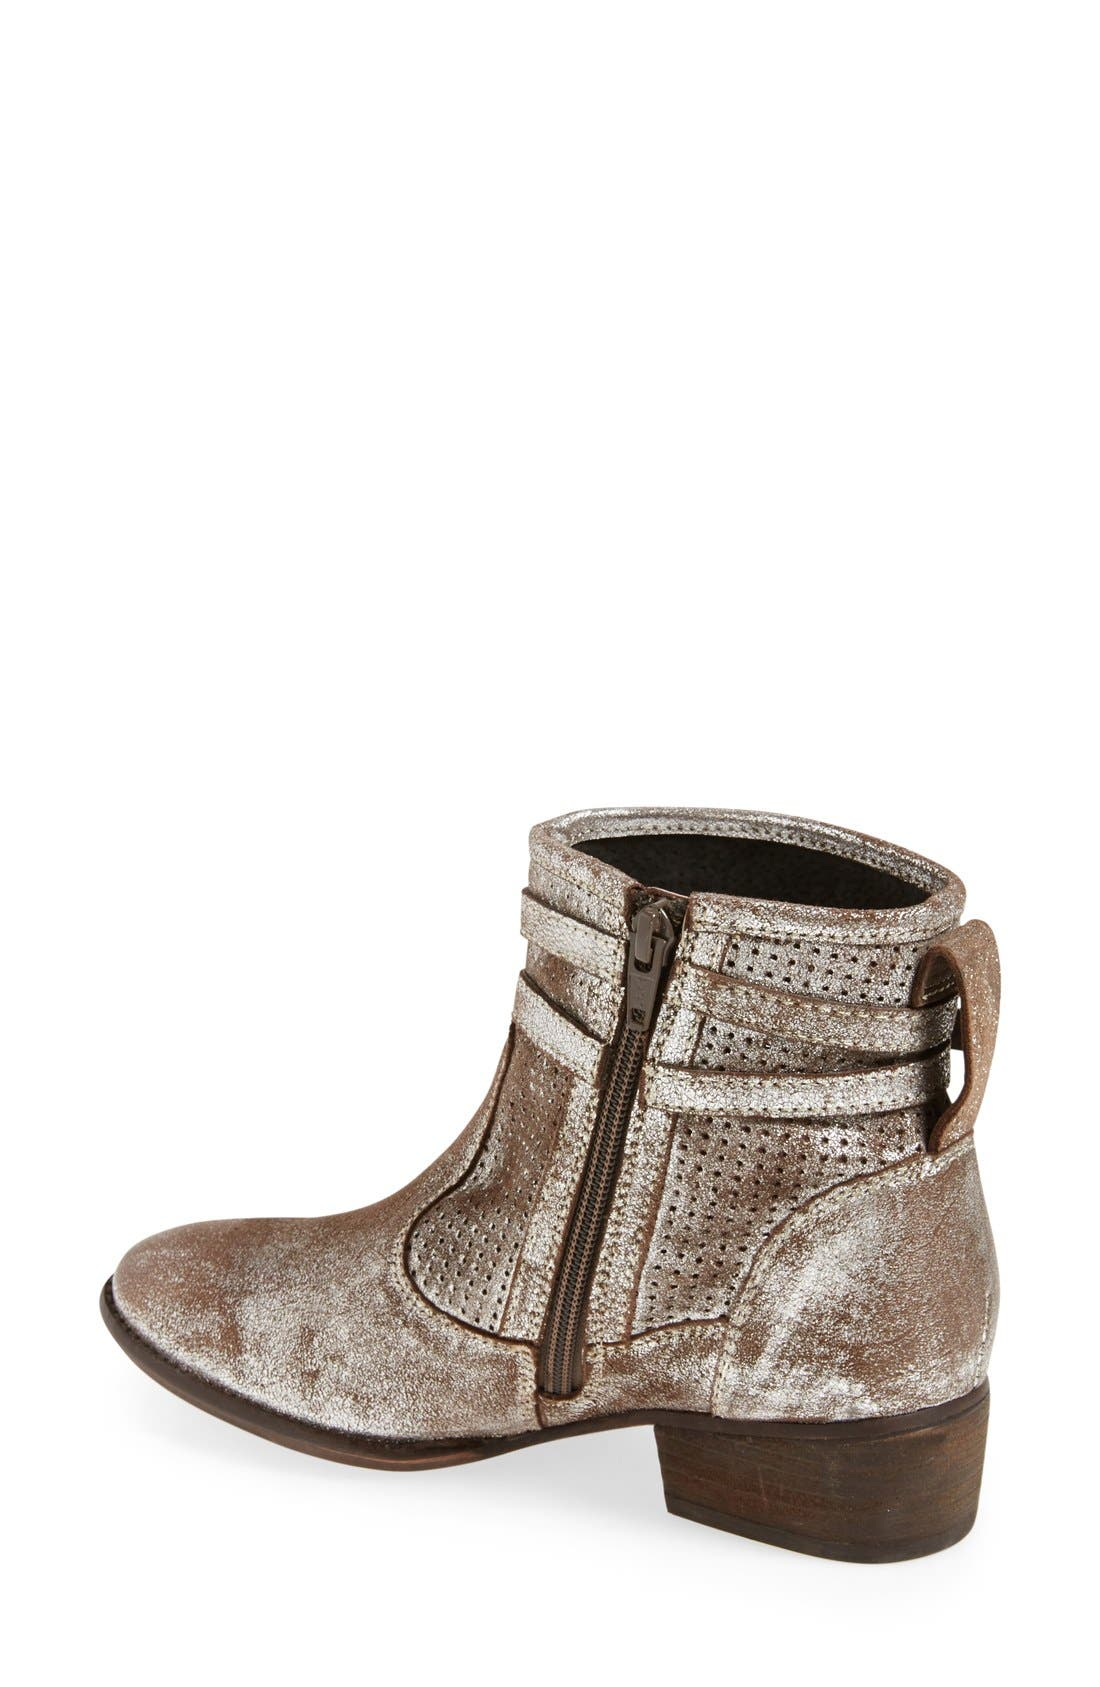 Alternate Image 2  - Seychelles 'Sanctuary' Suede Bootie (Women)